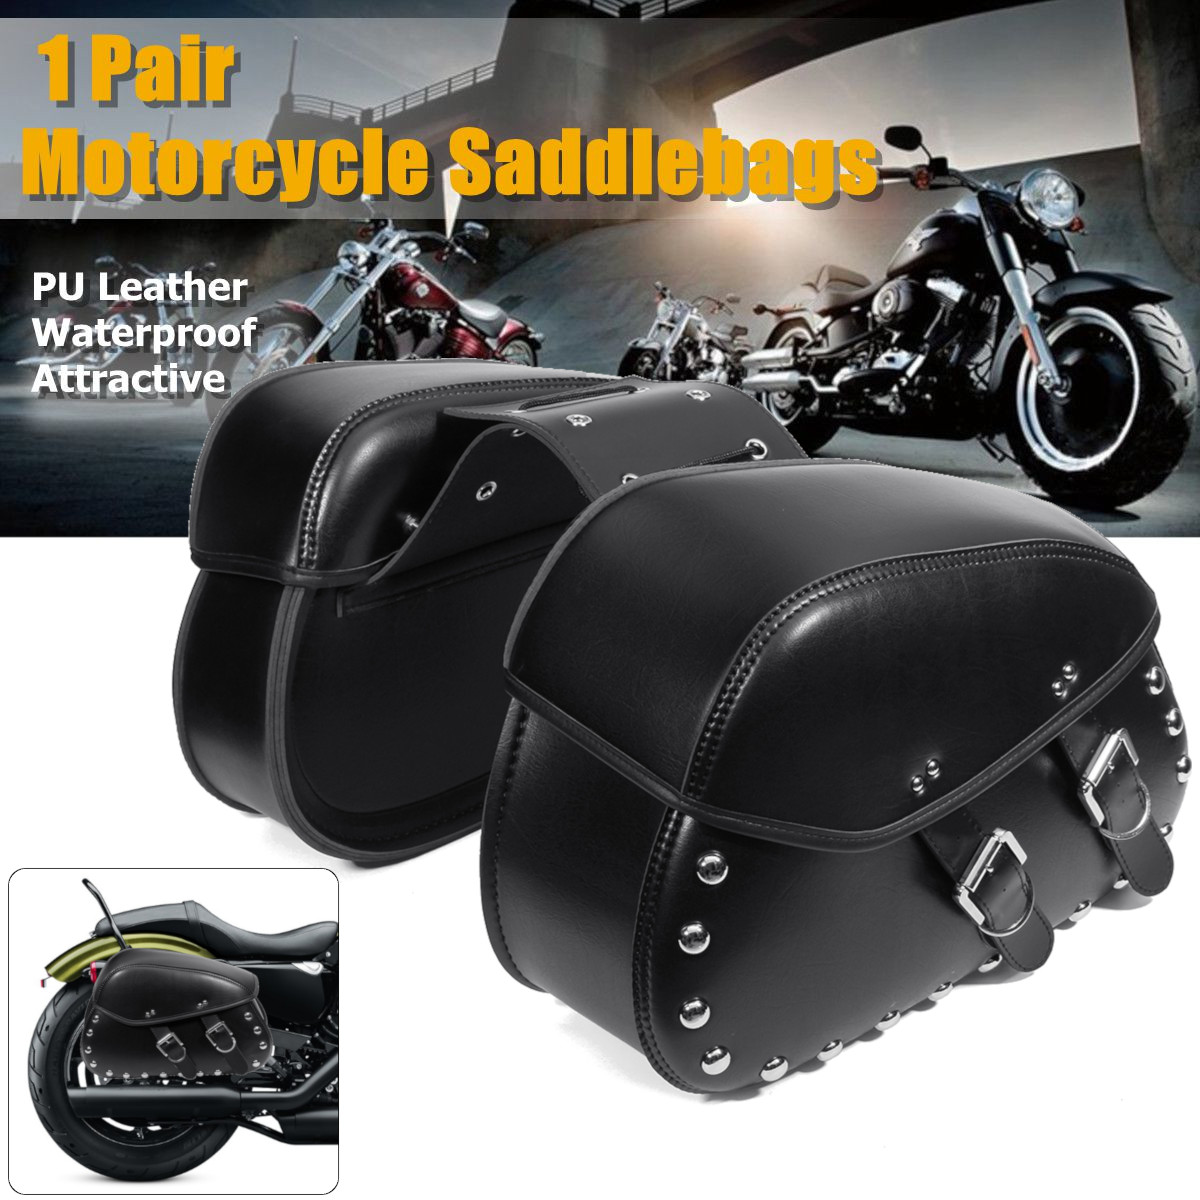 2pcs Black Universal Motorcycle PU Leather Left Right Side Saddlebag Luggage Saddle Bag for Harley new 2pcs female right left vivid foot mannequin jewerly display model art sketch